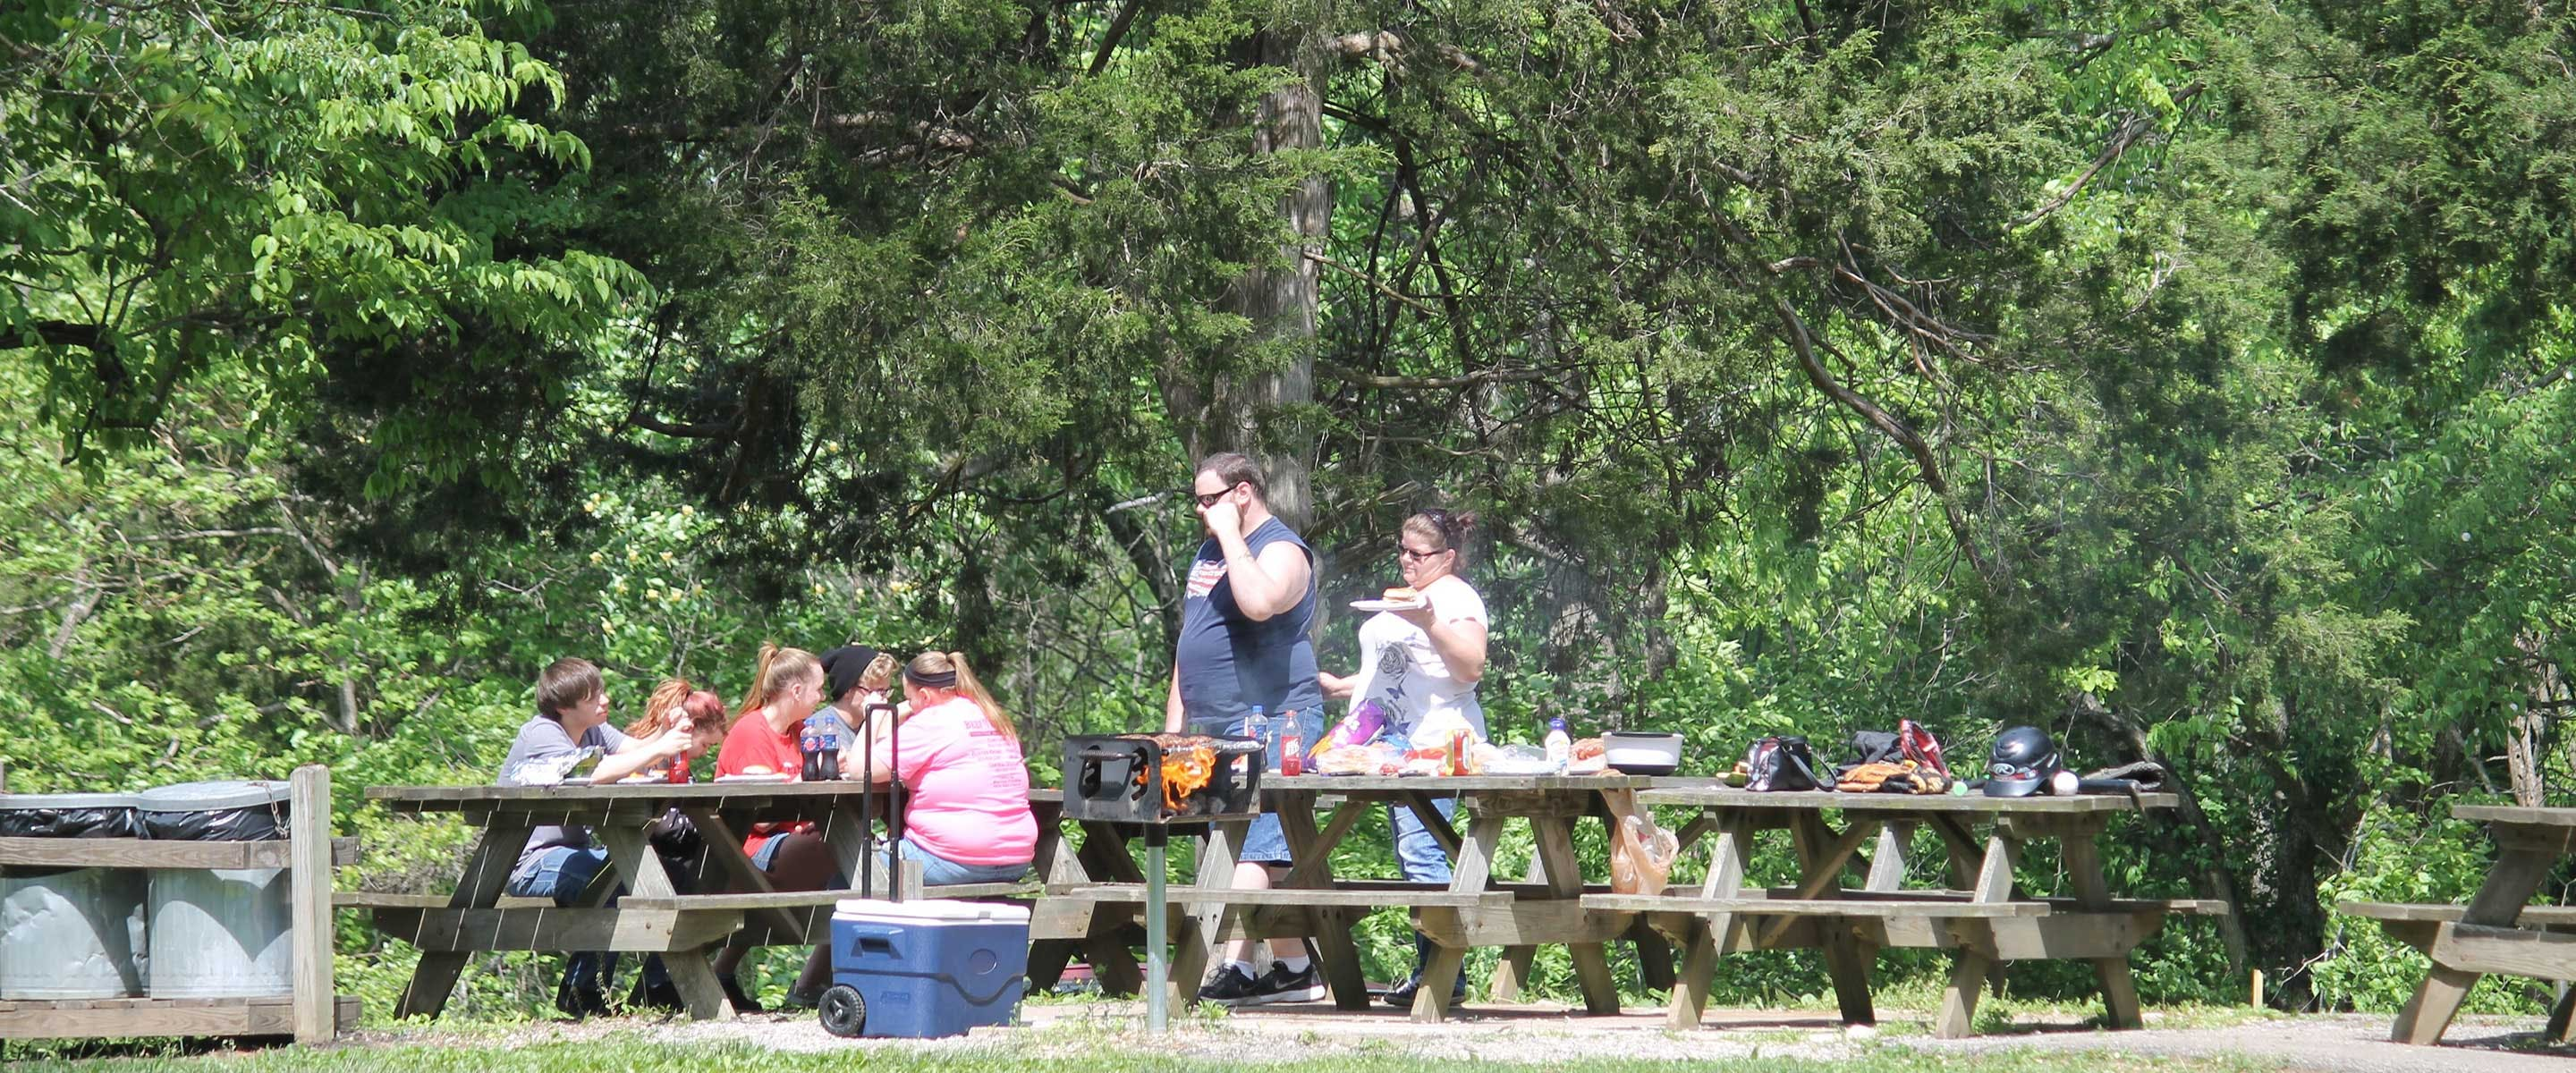 Couple enjoying a grilled meal at one of the picnic tables